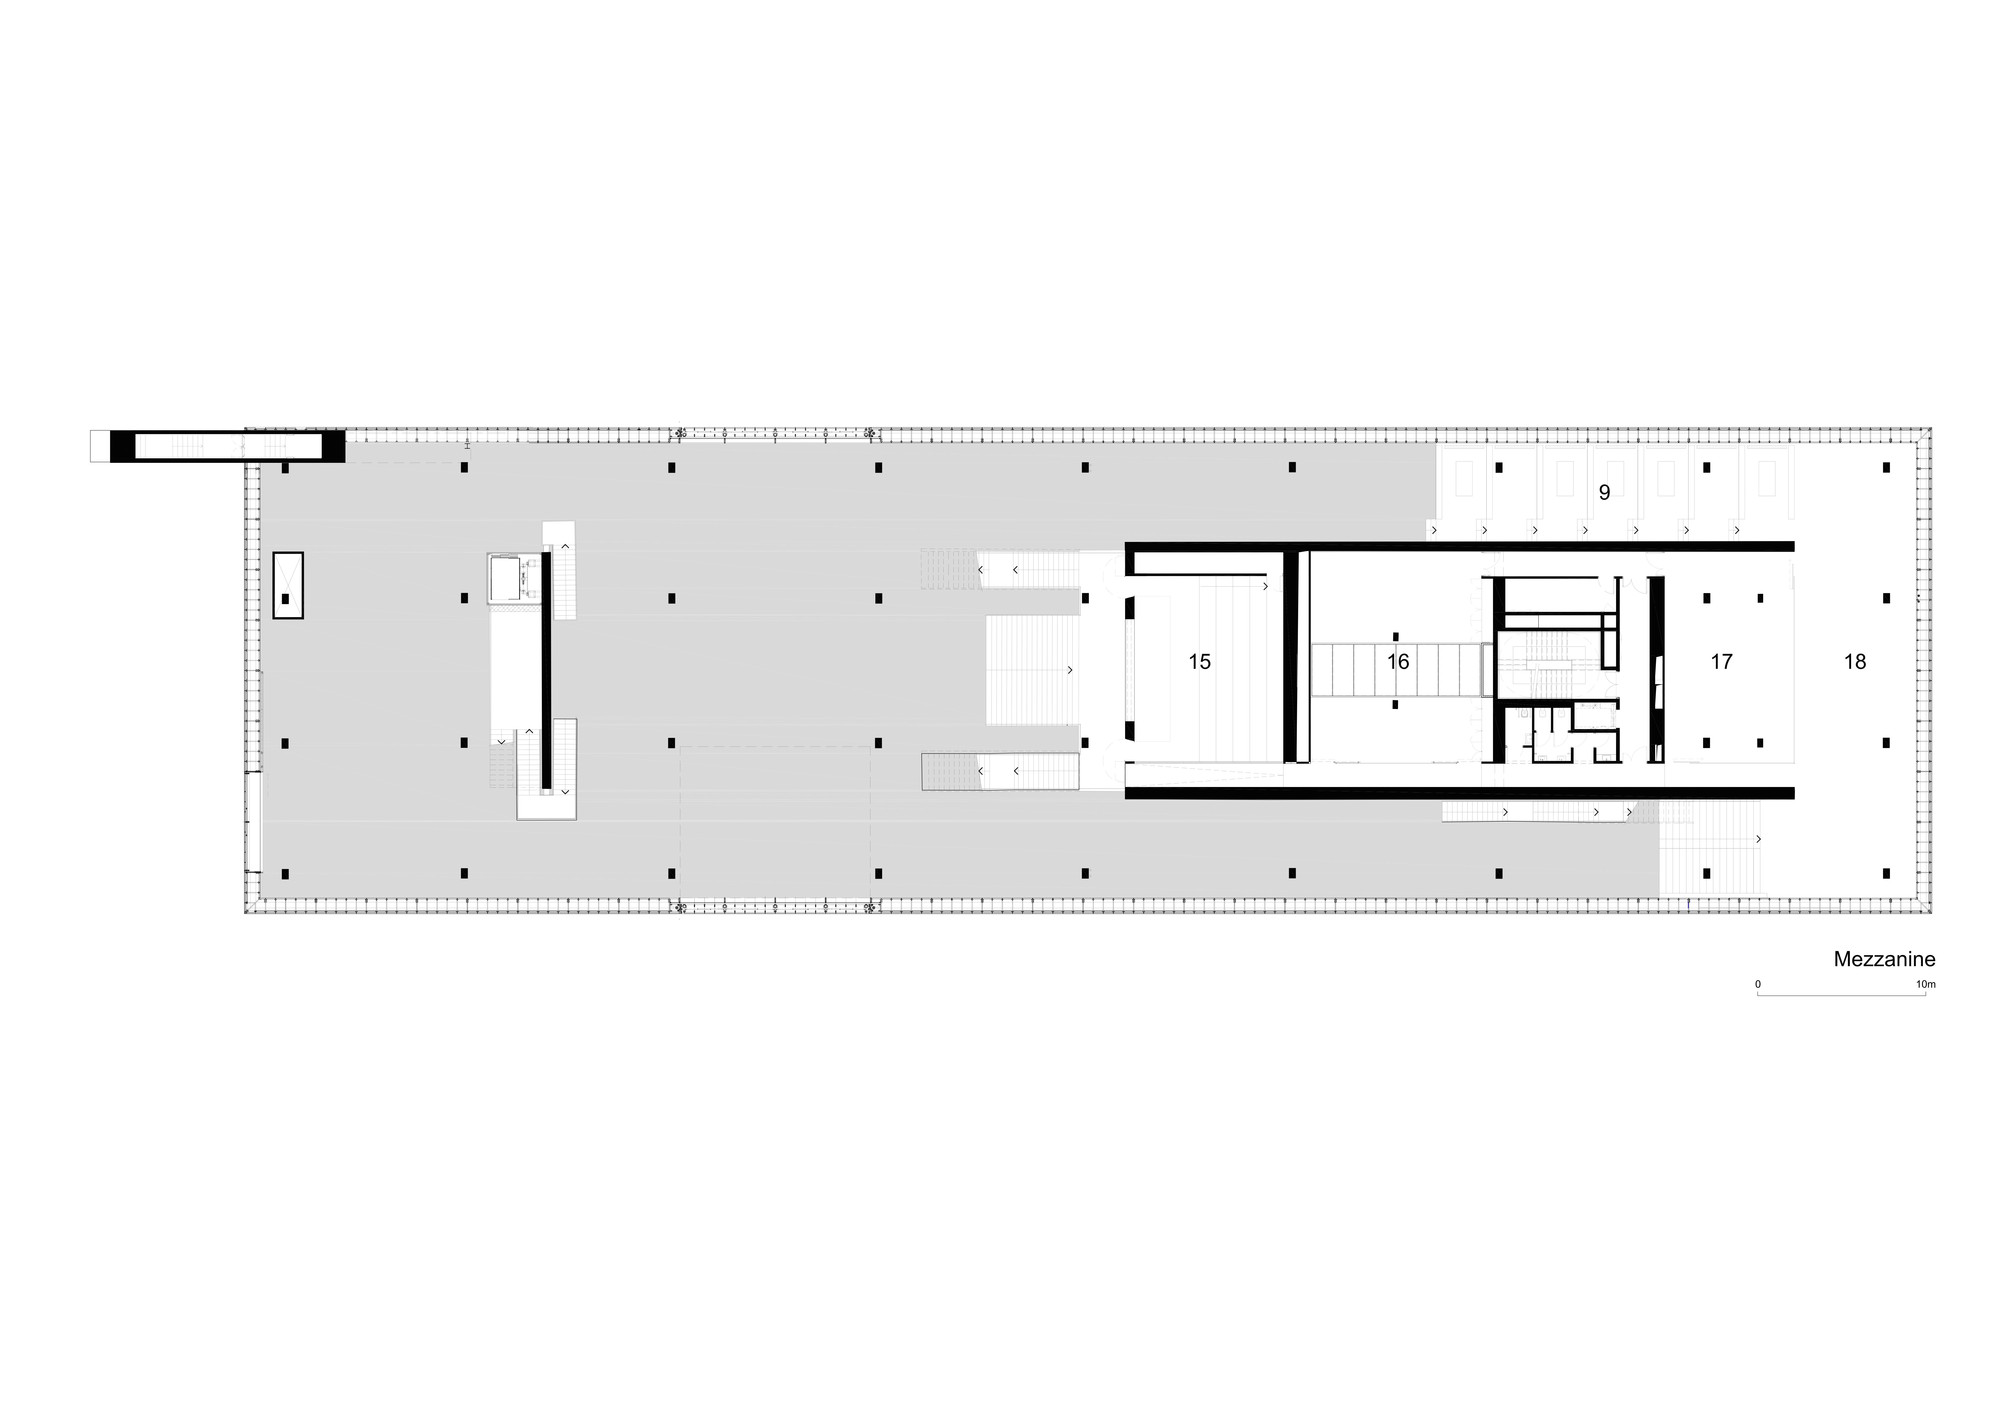 Gallery of garage museum of contemporary art oma 36 for Garage mezzanine plans